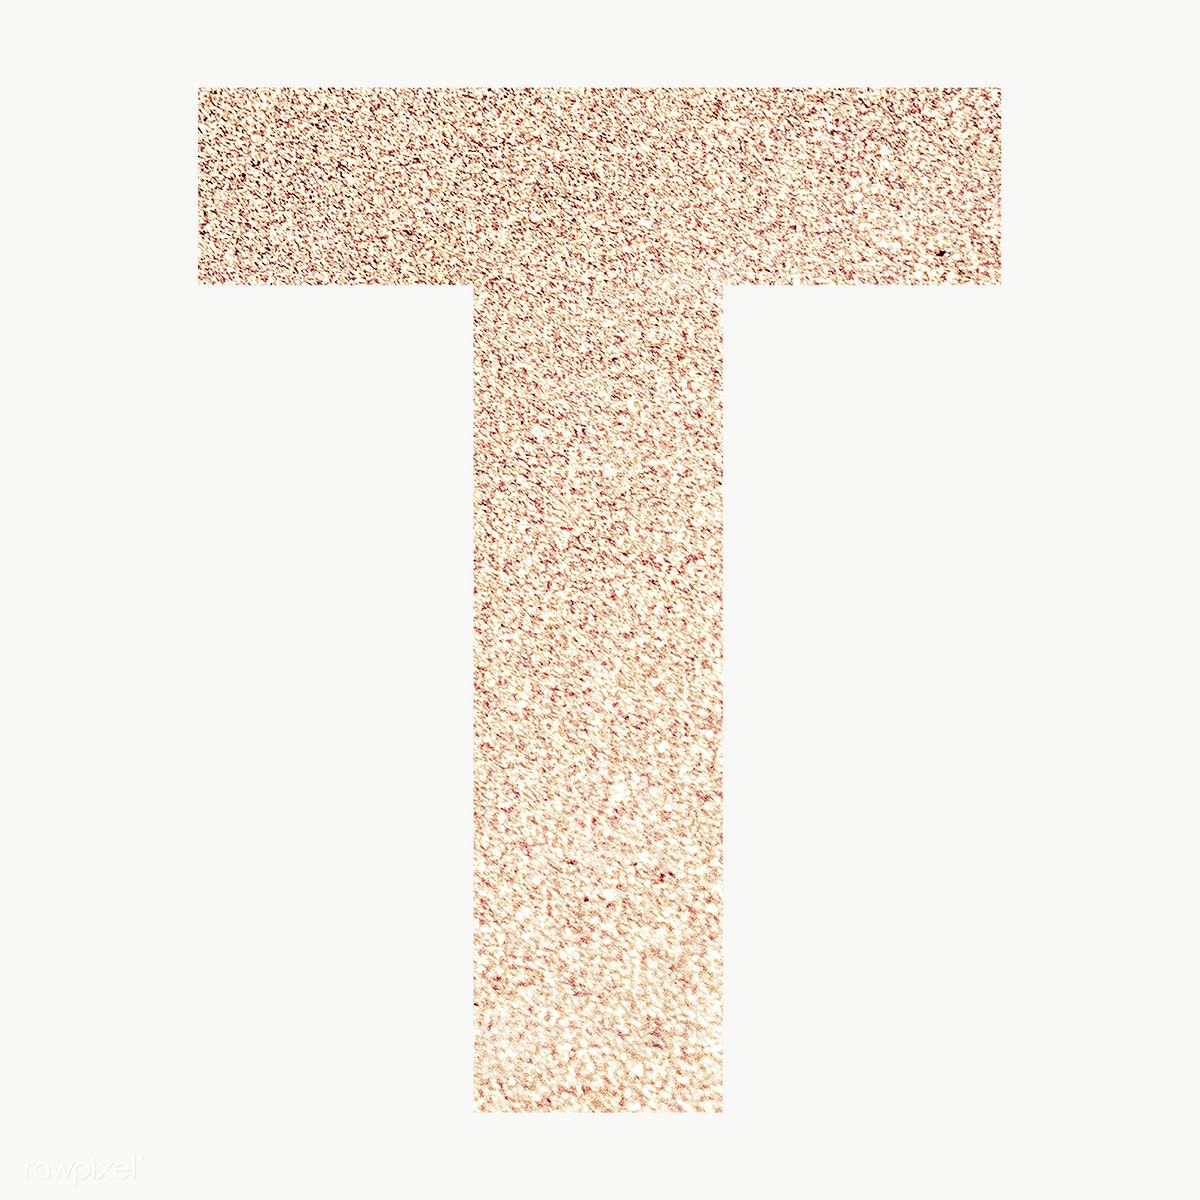 Glitter Capital Letter T Sticker Transparent Png Free Image By Rawpixel Com Ningzk V Transparent Stickers Numbers Typography Lettering Alphabet